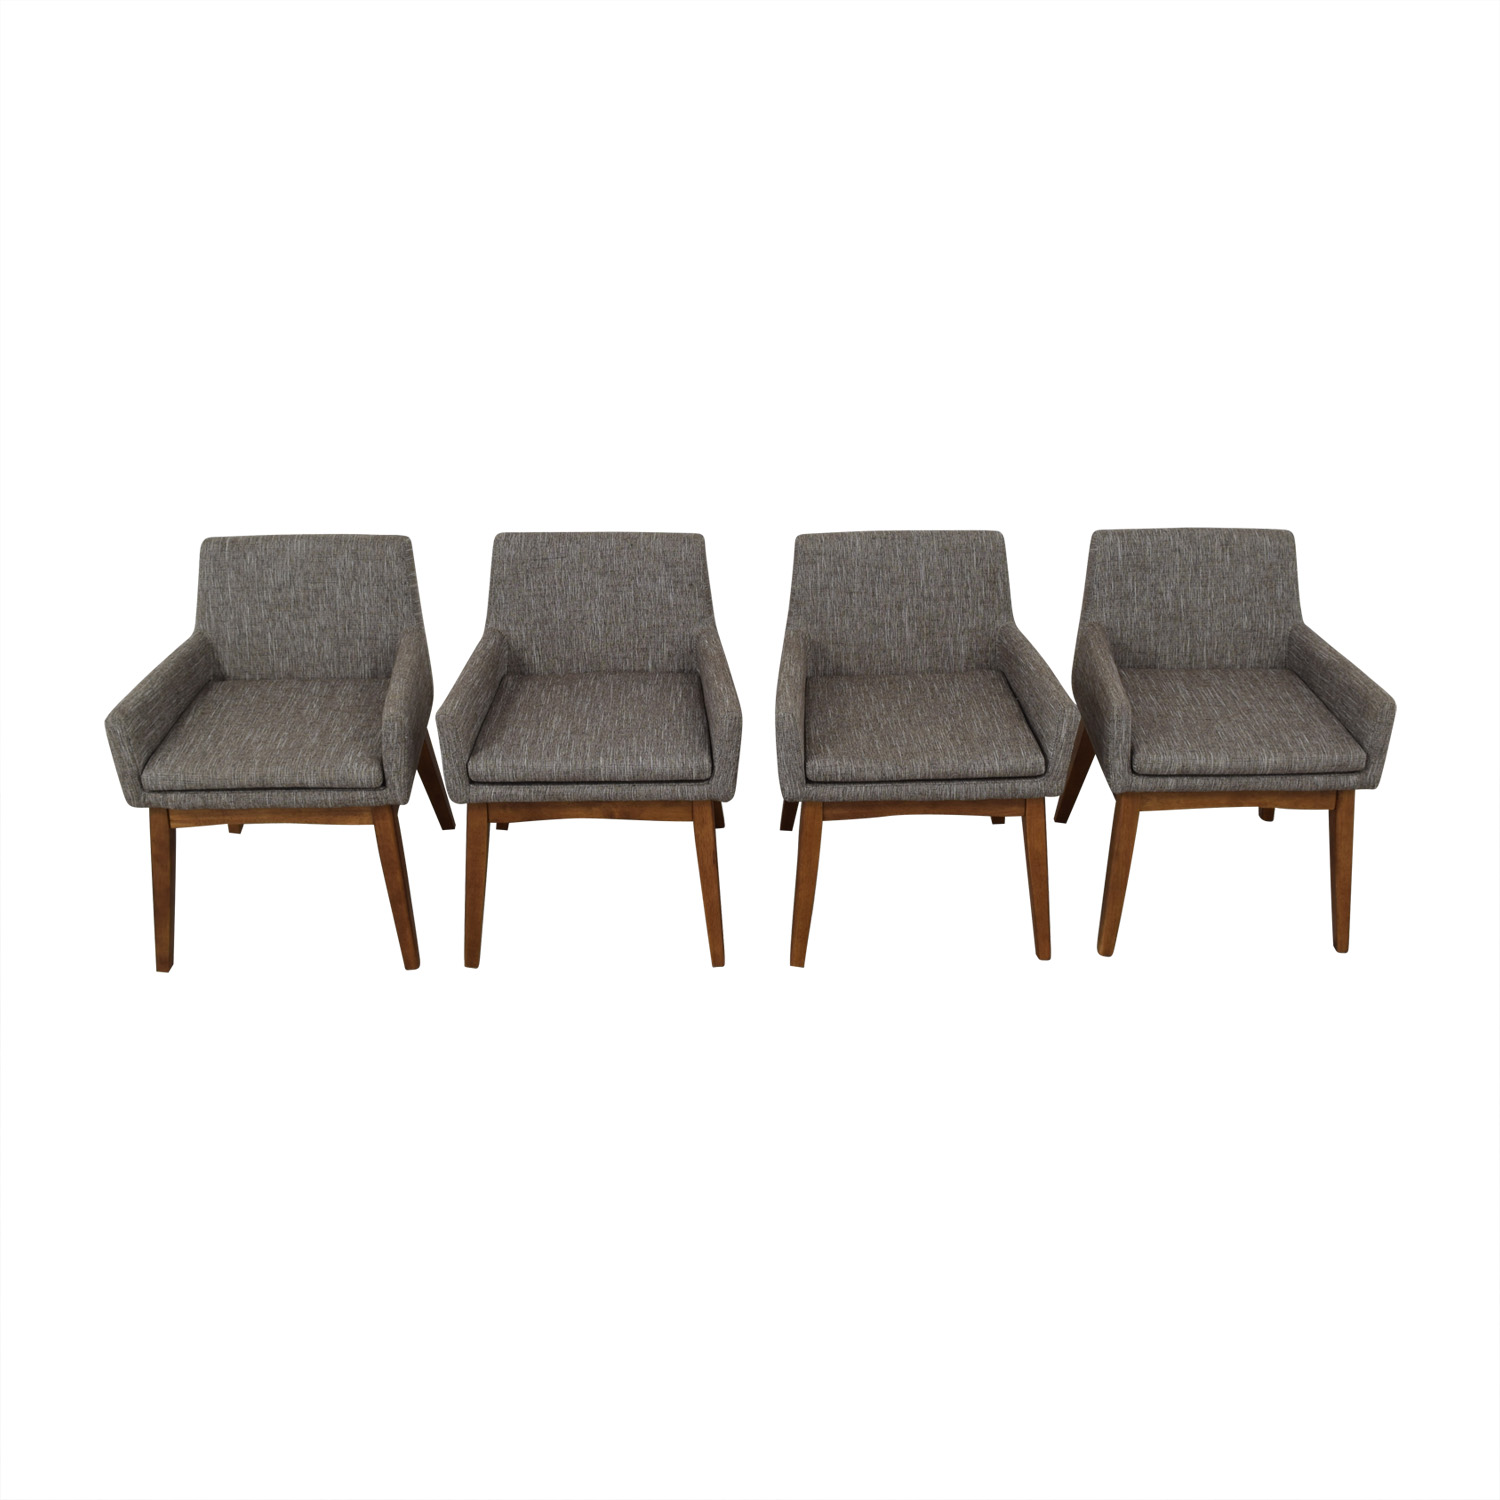 buy Article Feast Dining Chairs Article